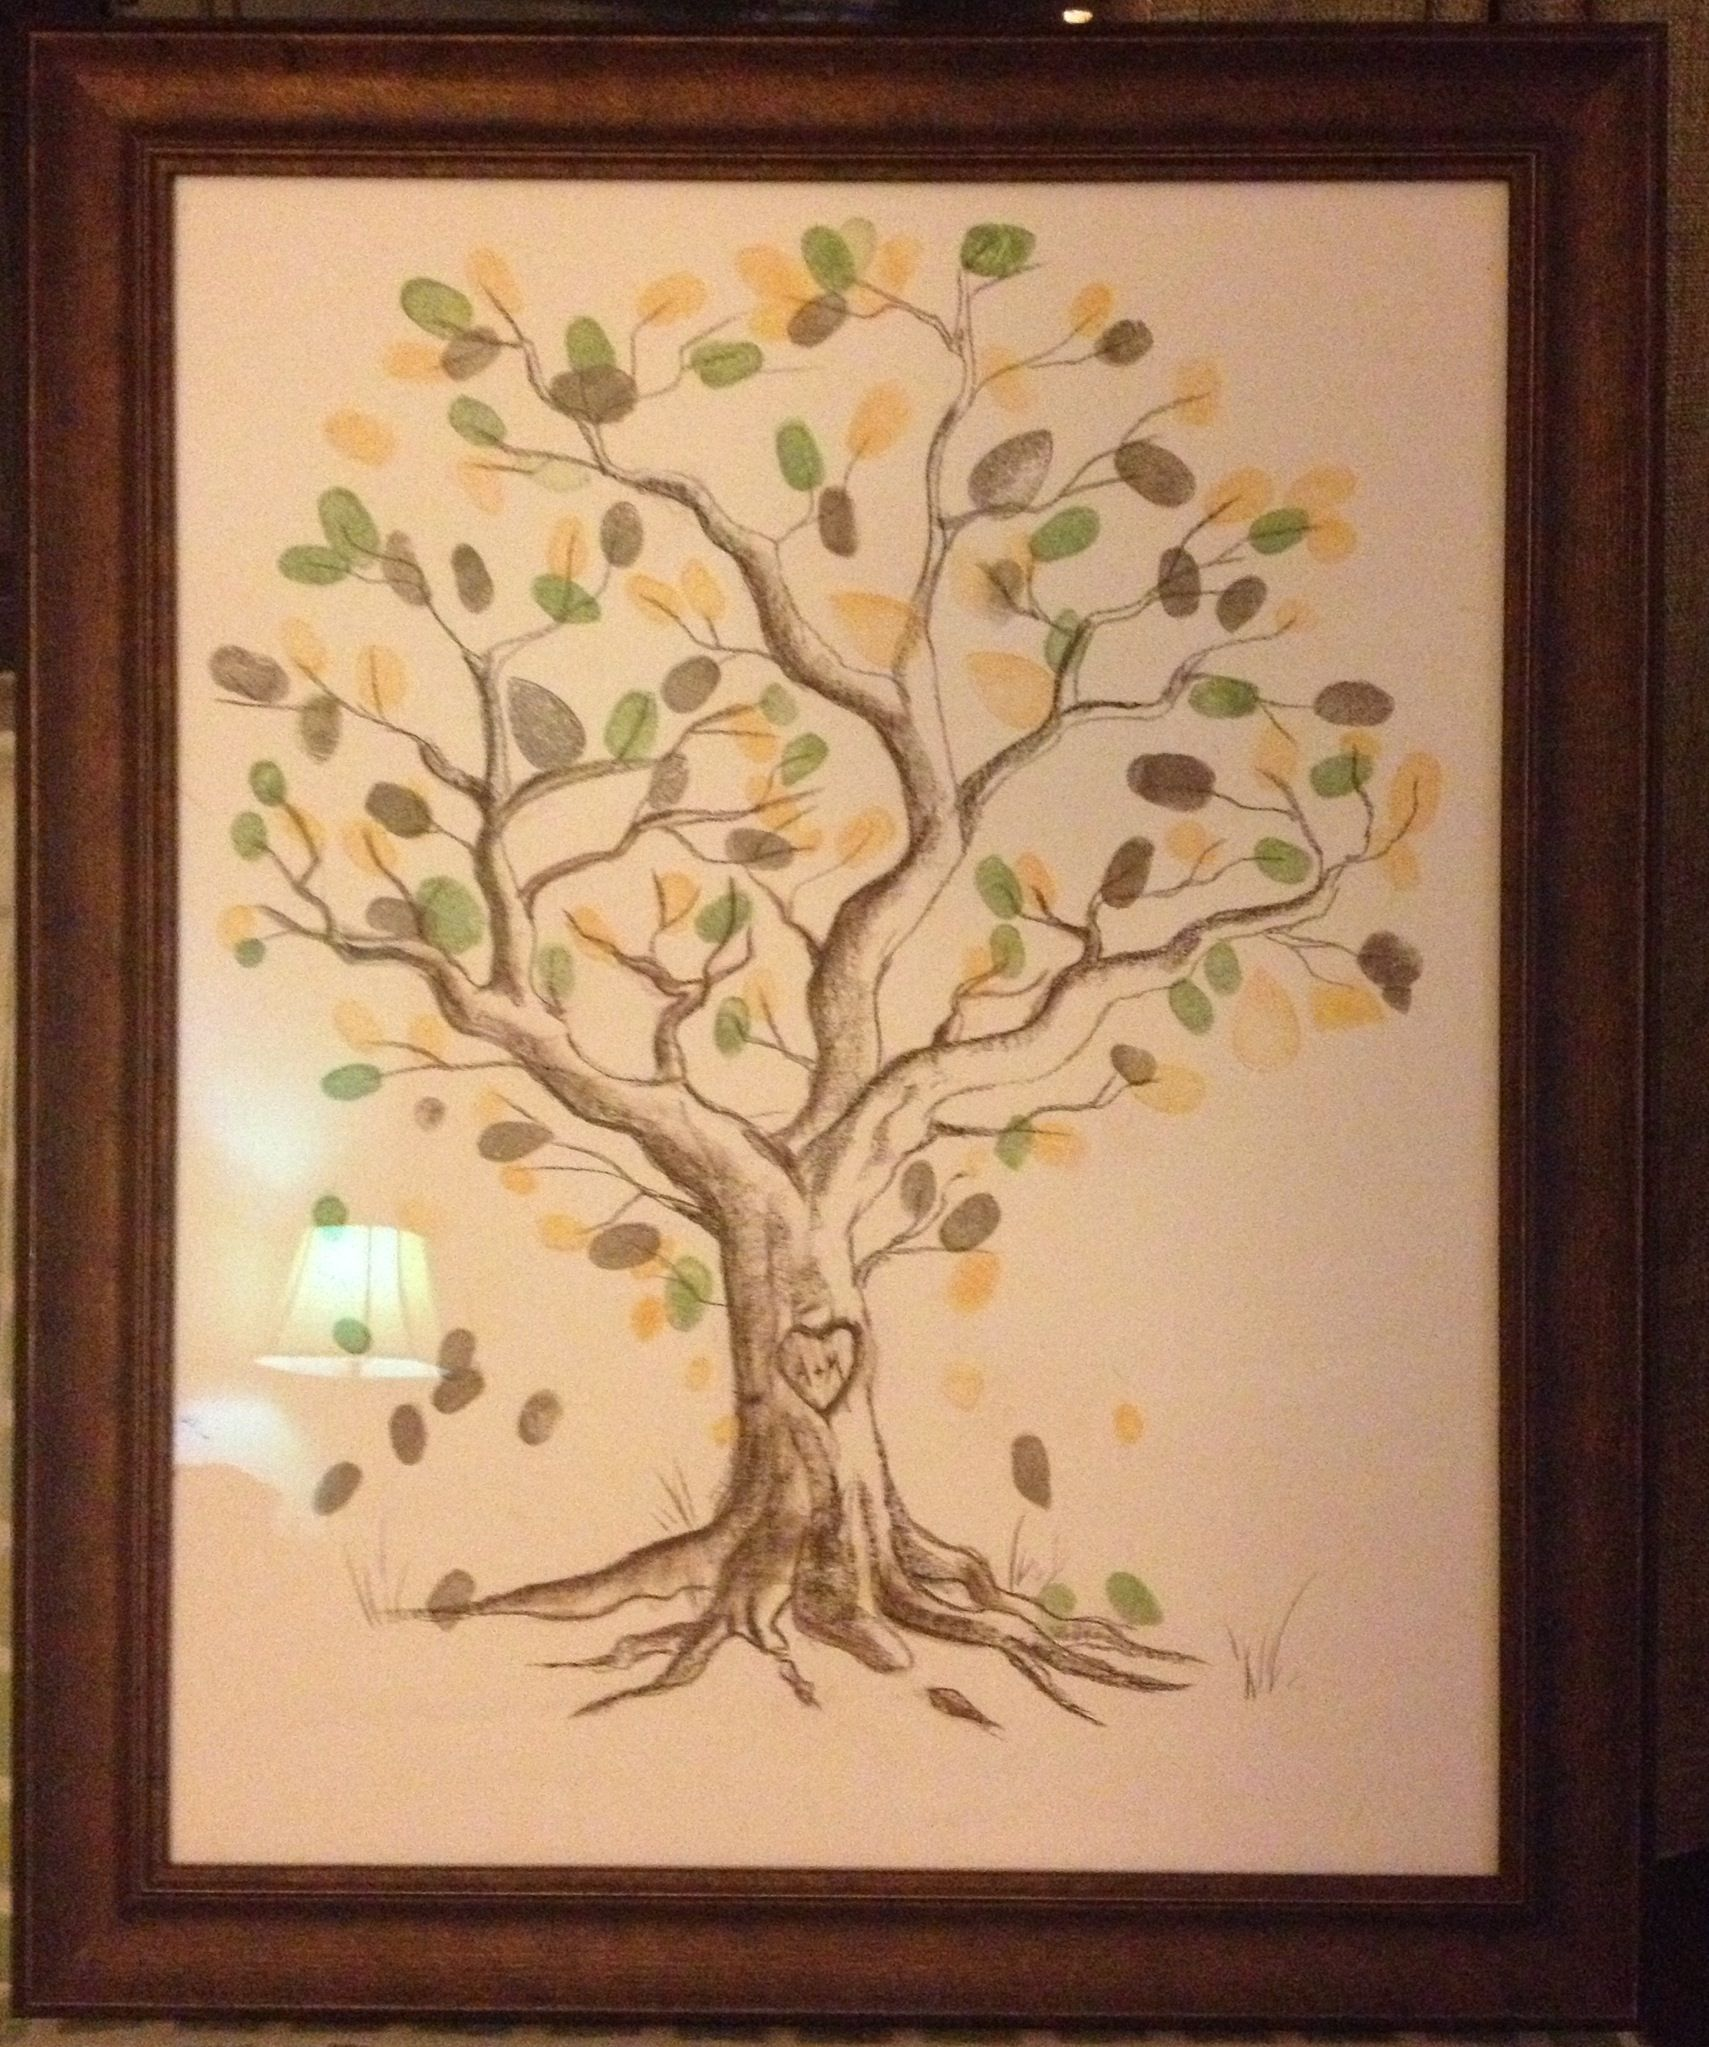 Framed (drawn by a friend) guest thumbprint tree from our wedding ...